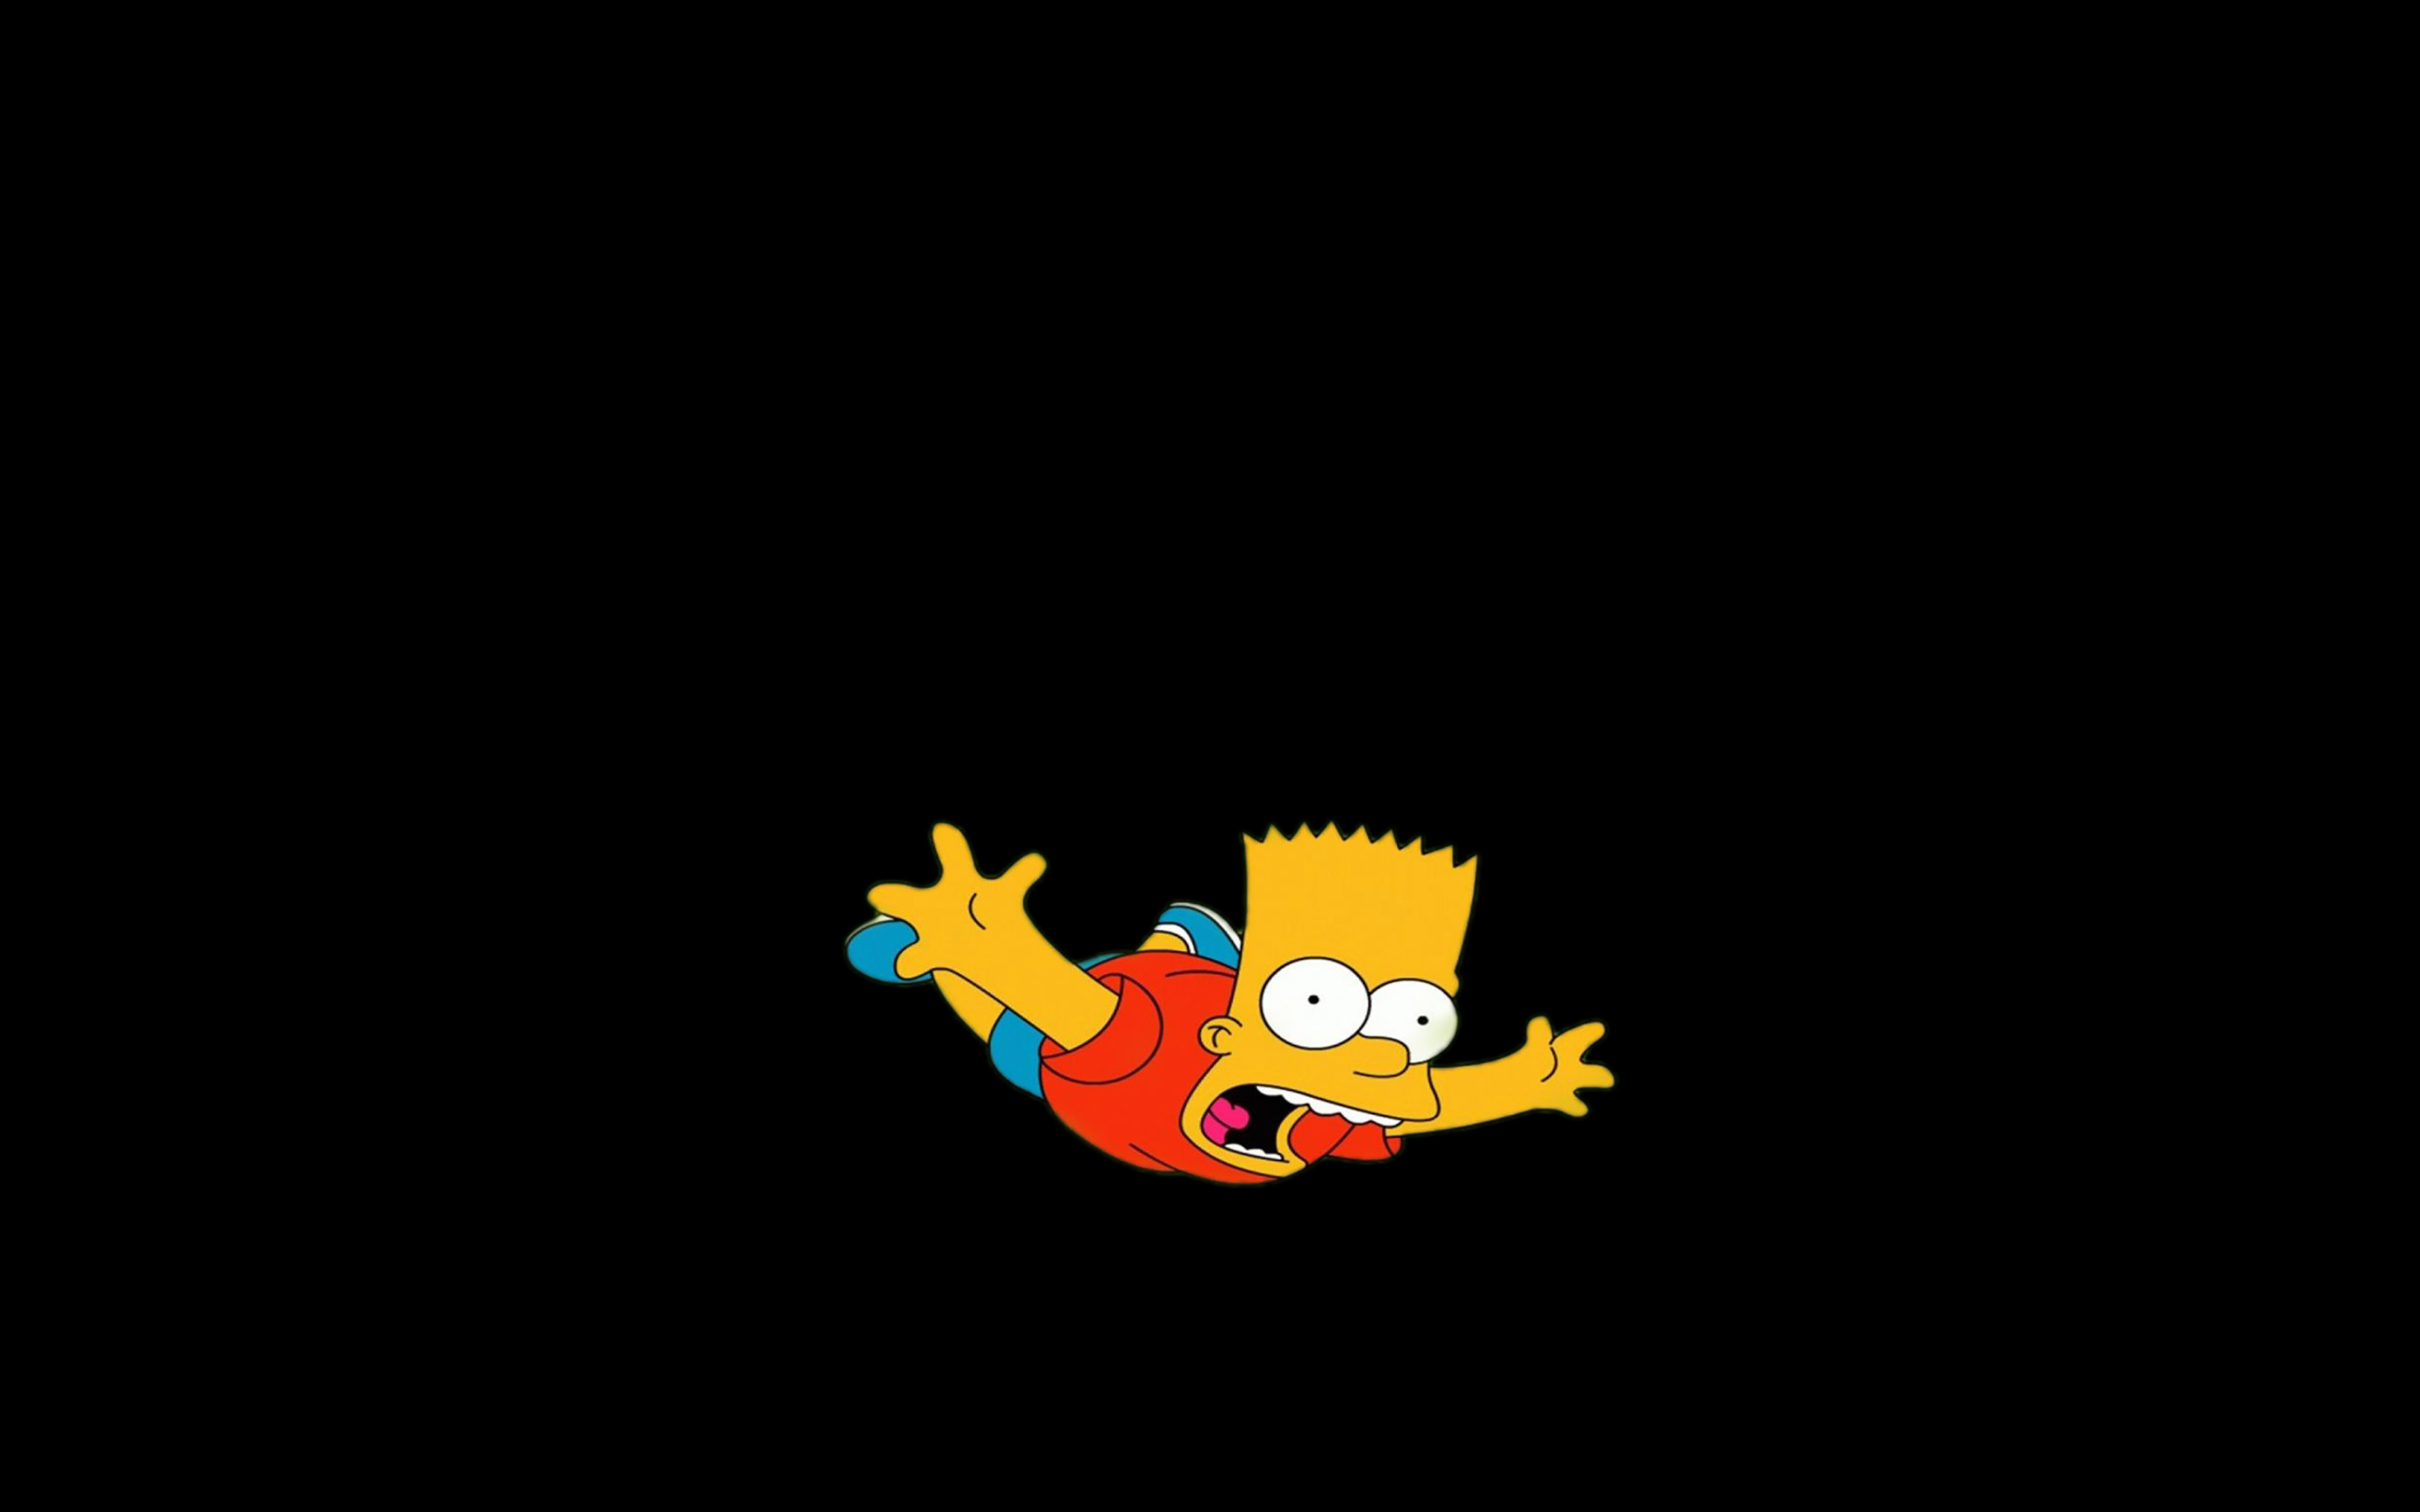 Funny Meme Wallpapers For Iphone : Ag bart simpson funny cute illlust papers